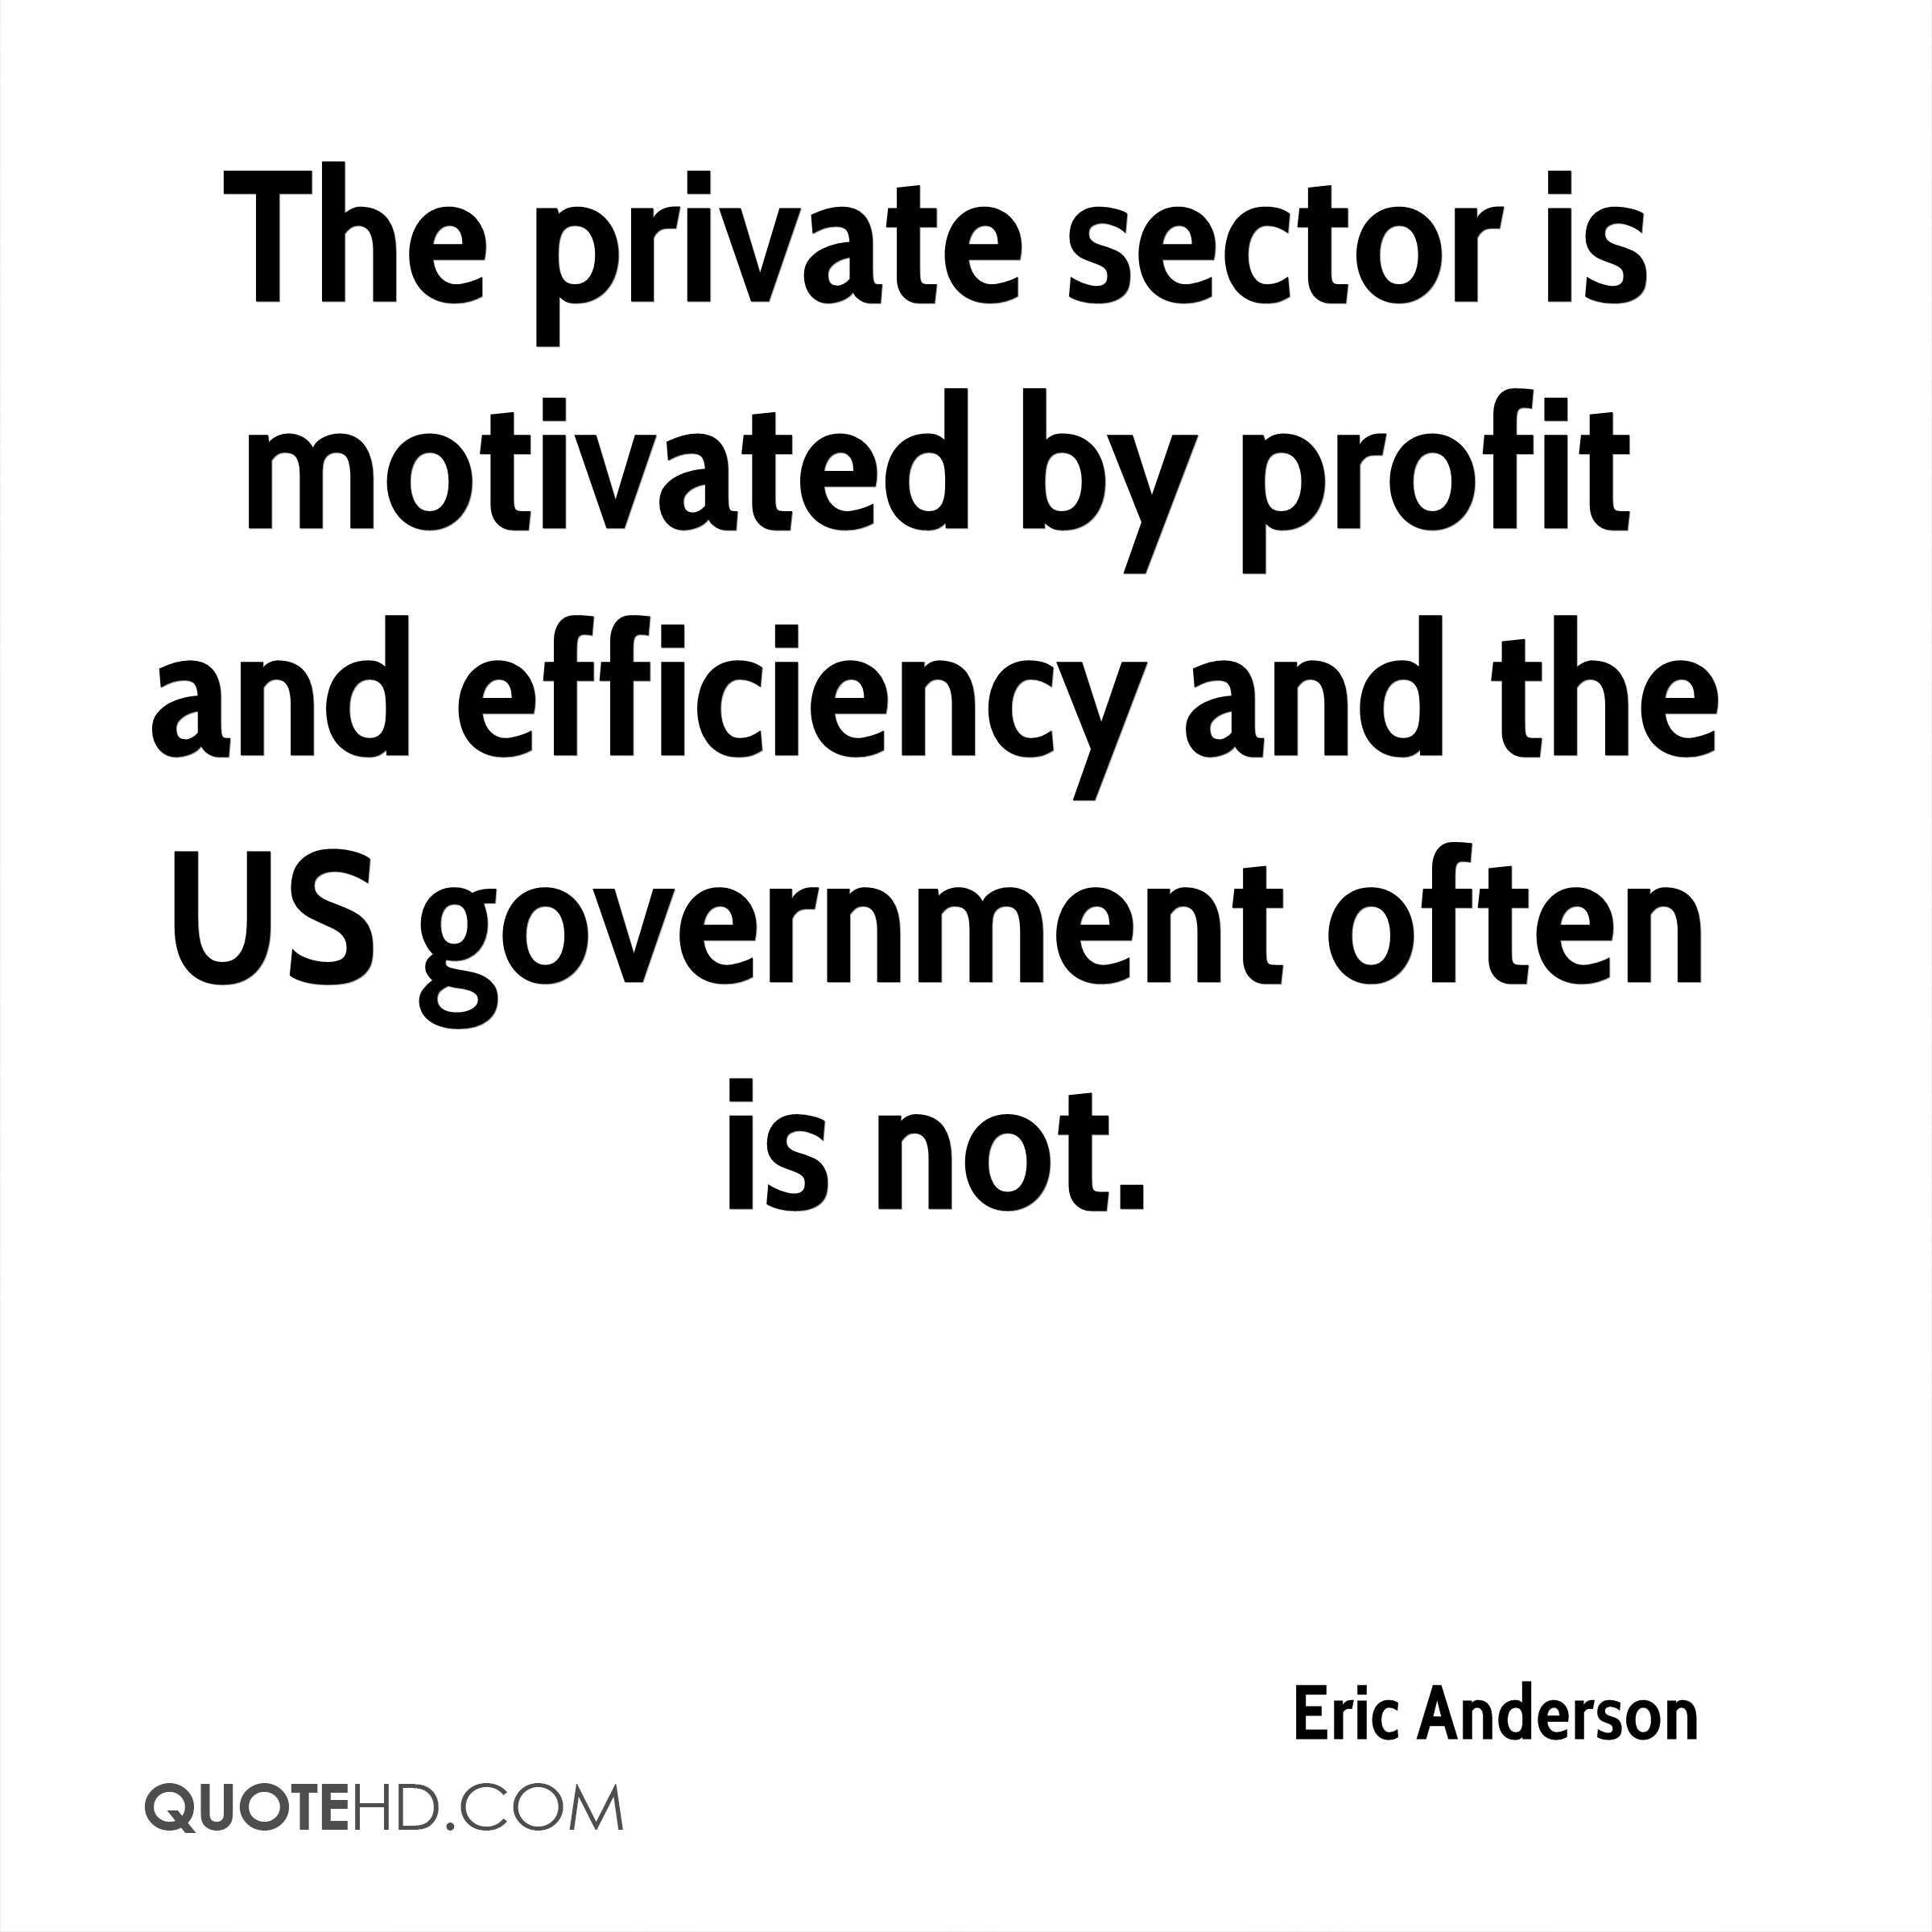 The private sector is motivated by profit and efficiency and the US government often is not.